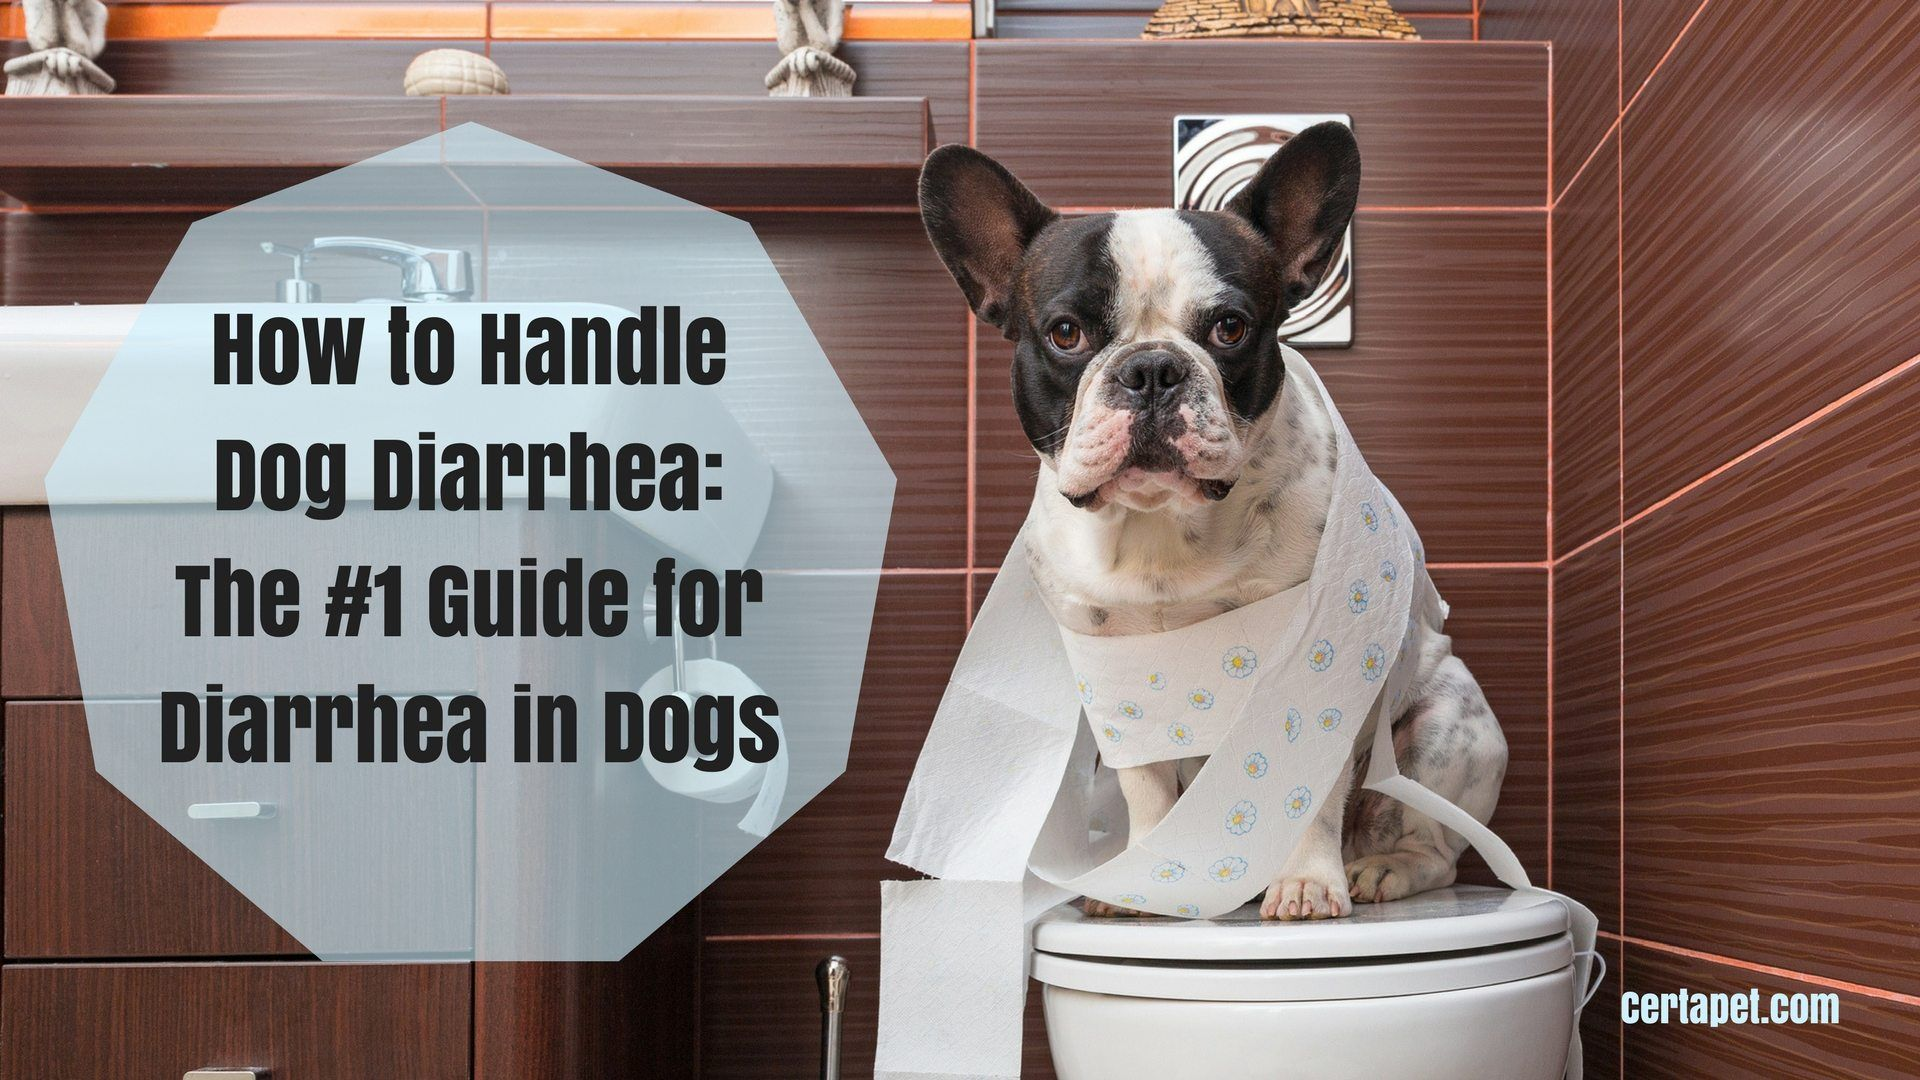 How To Handle Dog Diarrhea The 1 Guide For Diarrhea In Dogs